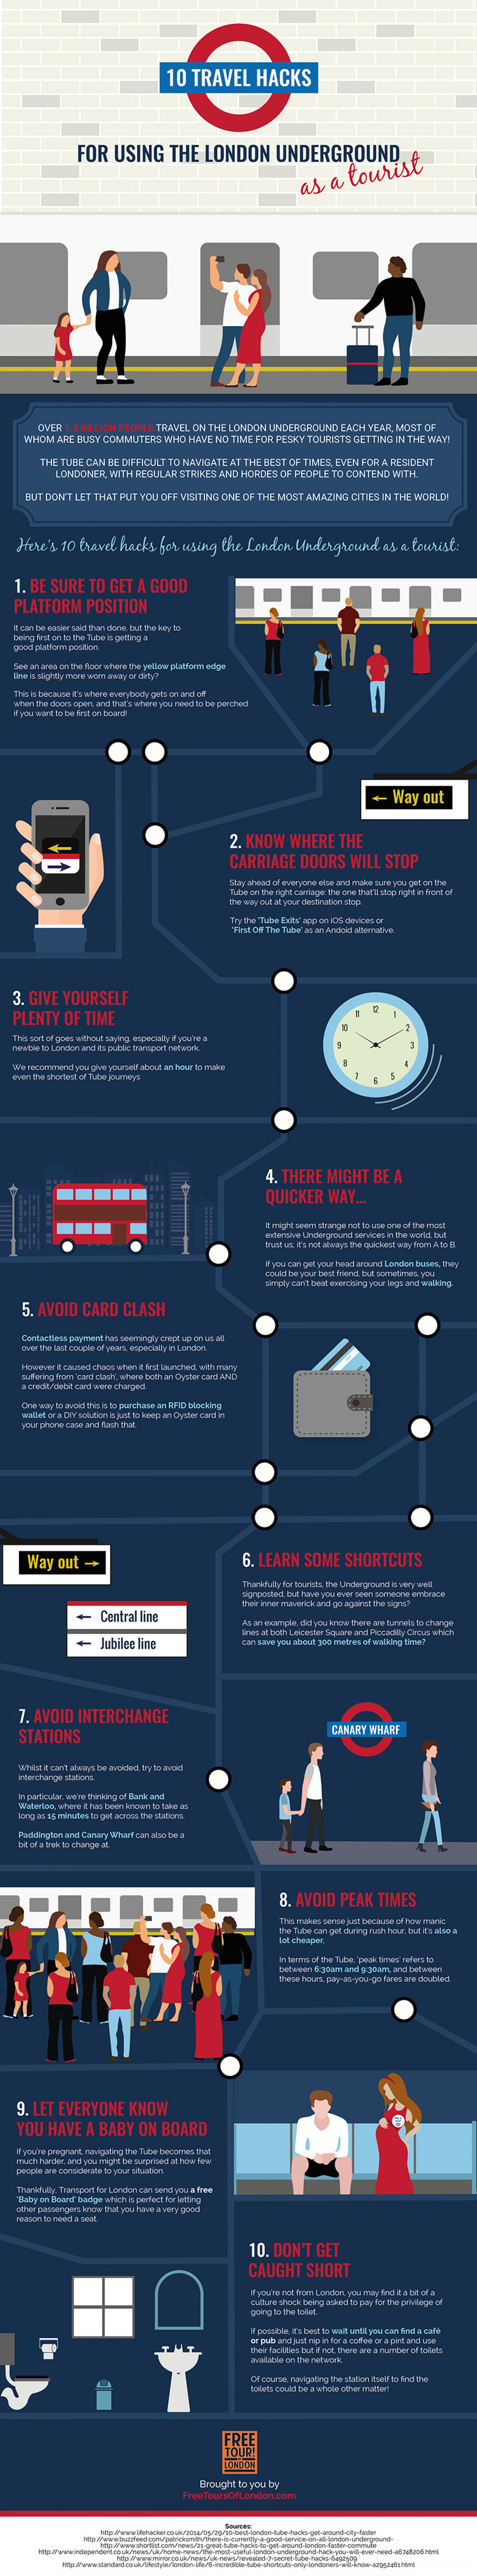 10 Travel Hacks For Using The London Underground As A Tourist Infographic